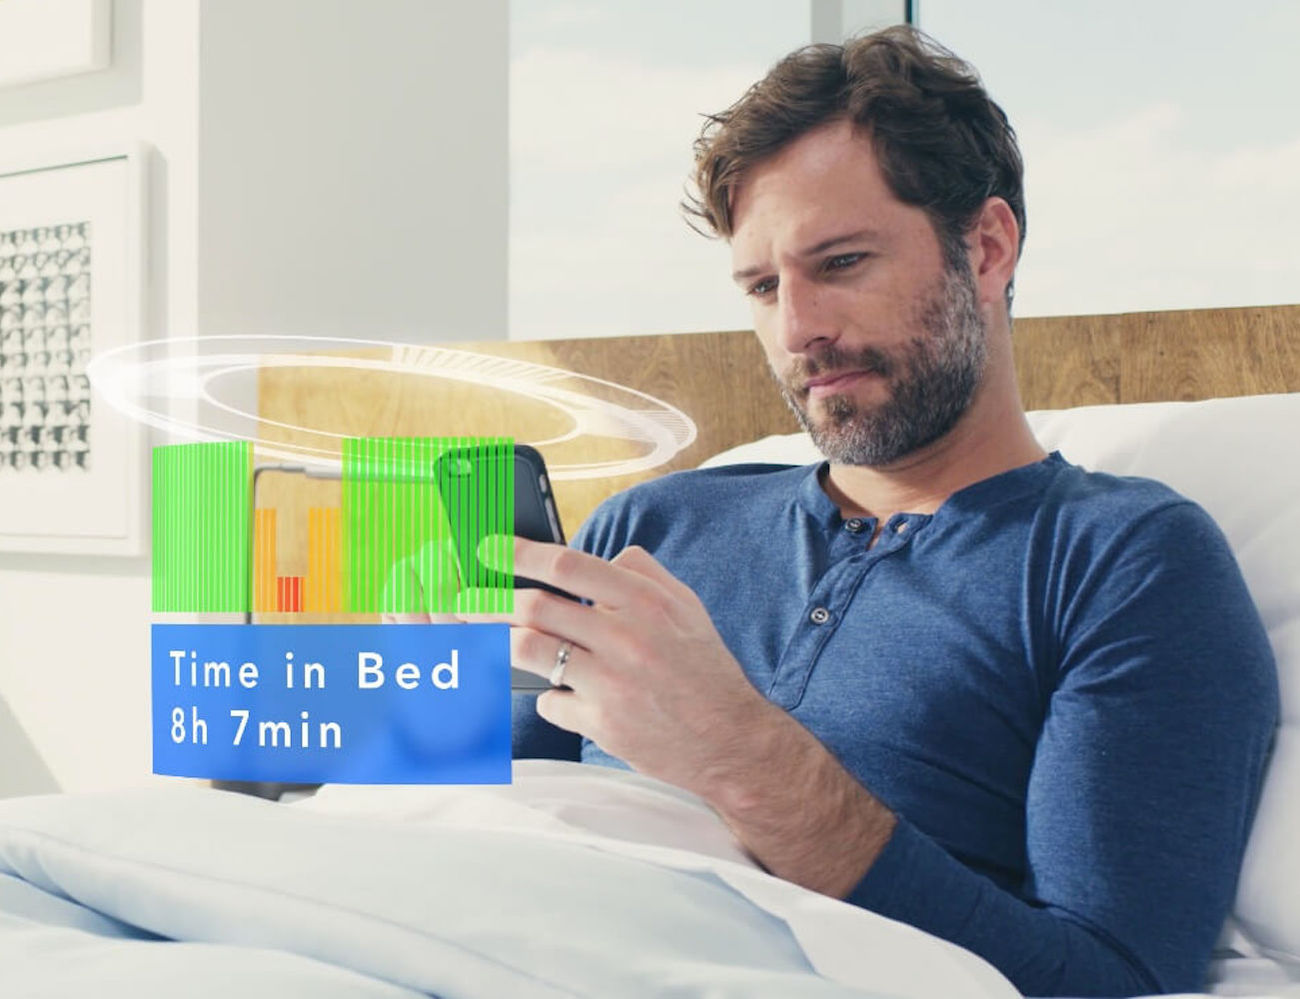 Thinking of buying a smart bed? Here's what you need to know - sleep Number 360 03